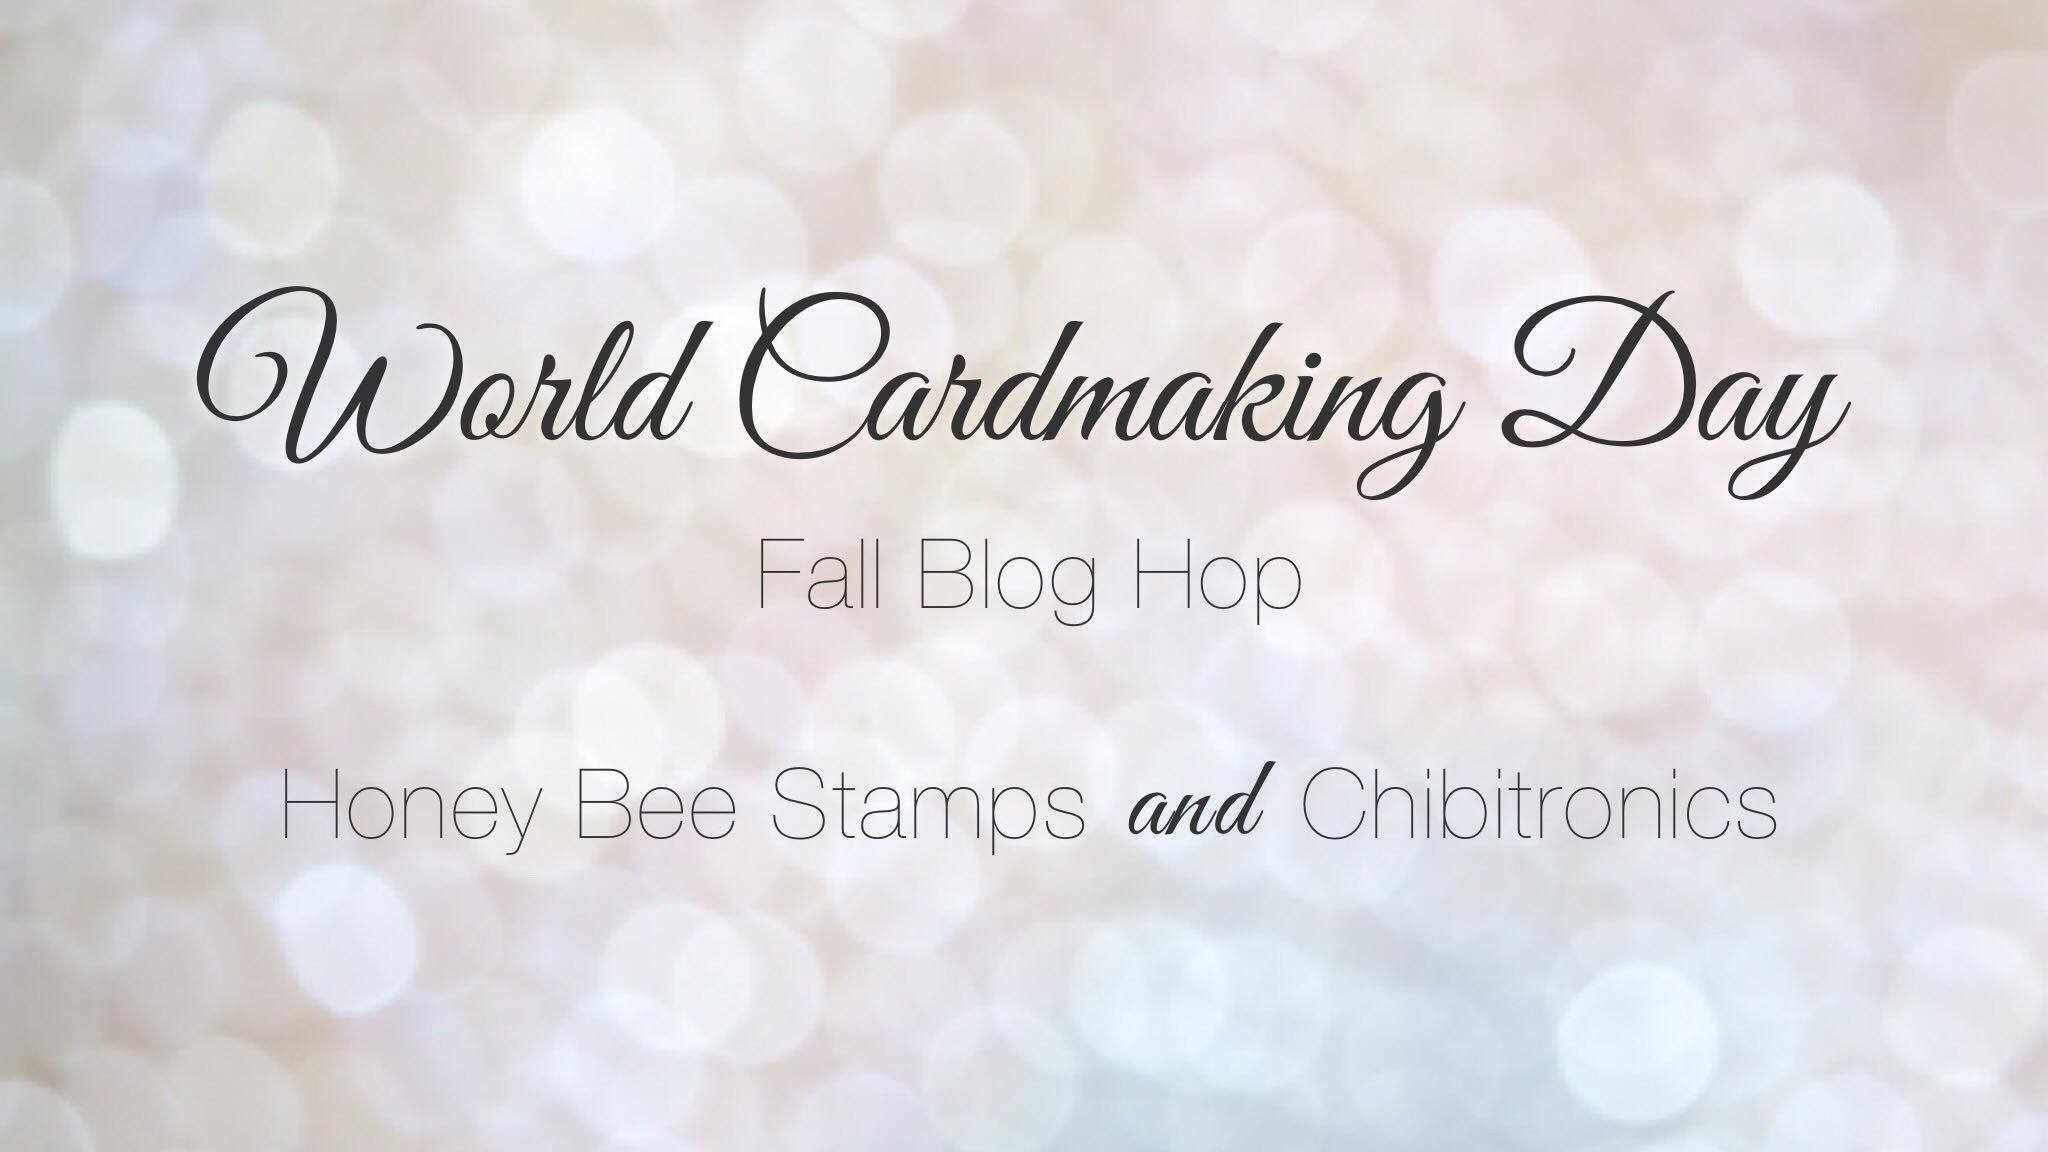 World Cardmaking Day Collaboration Blog Hop with Honey Bee Stamps & Chibitronics!